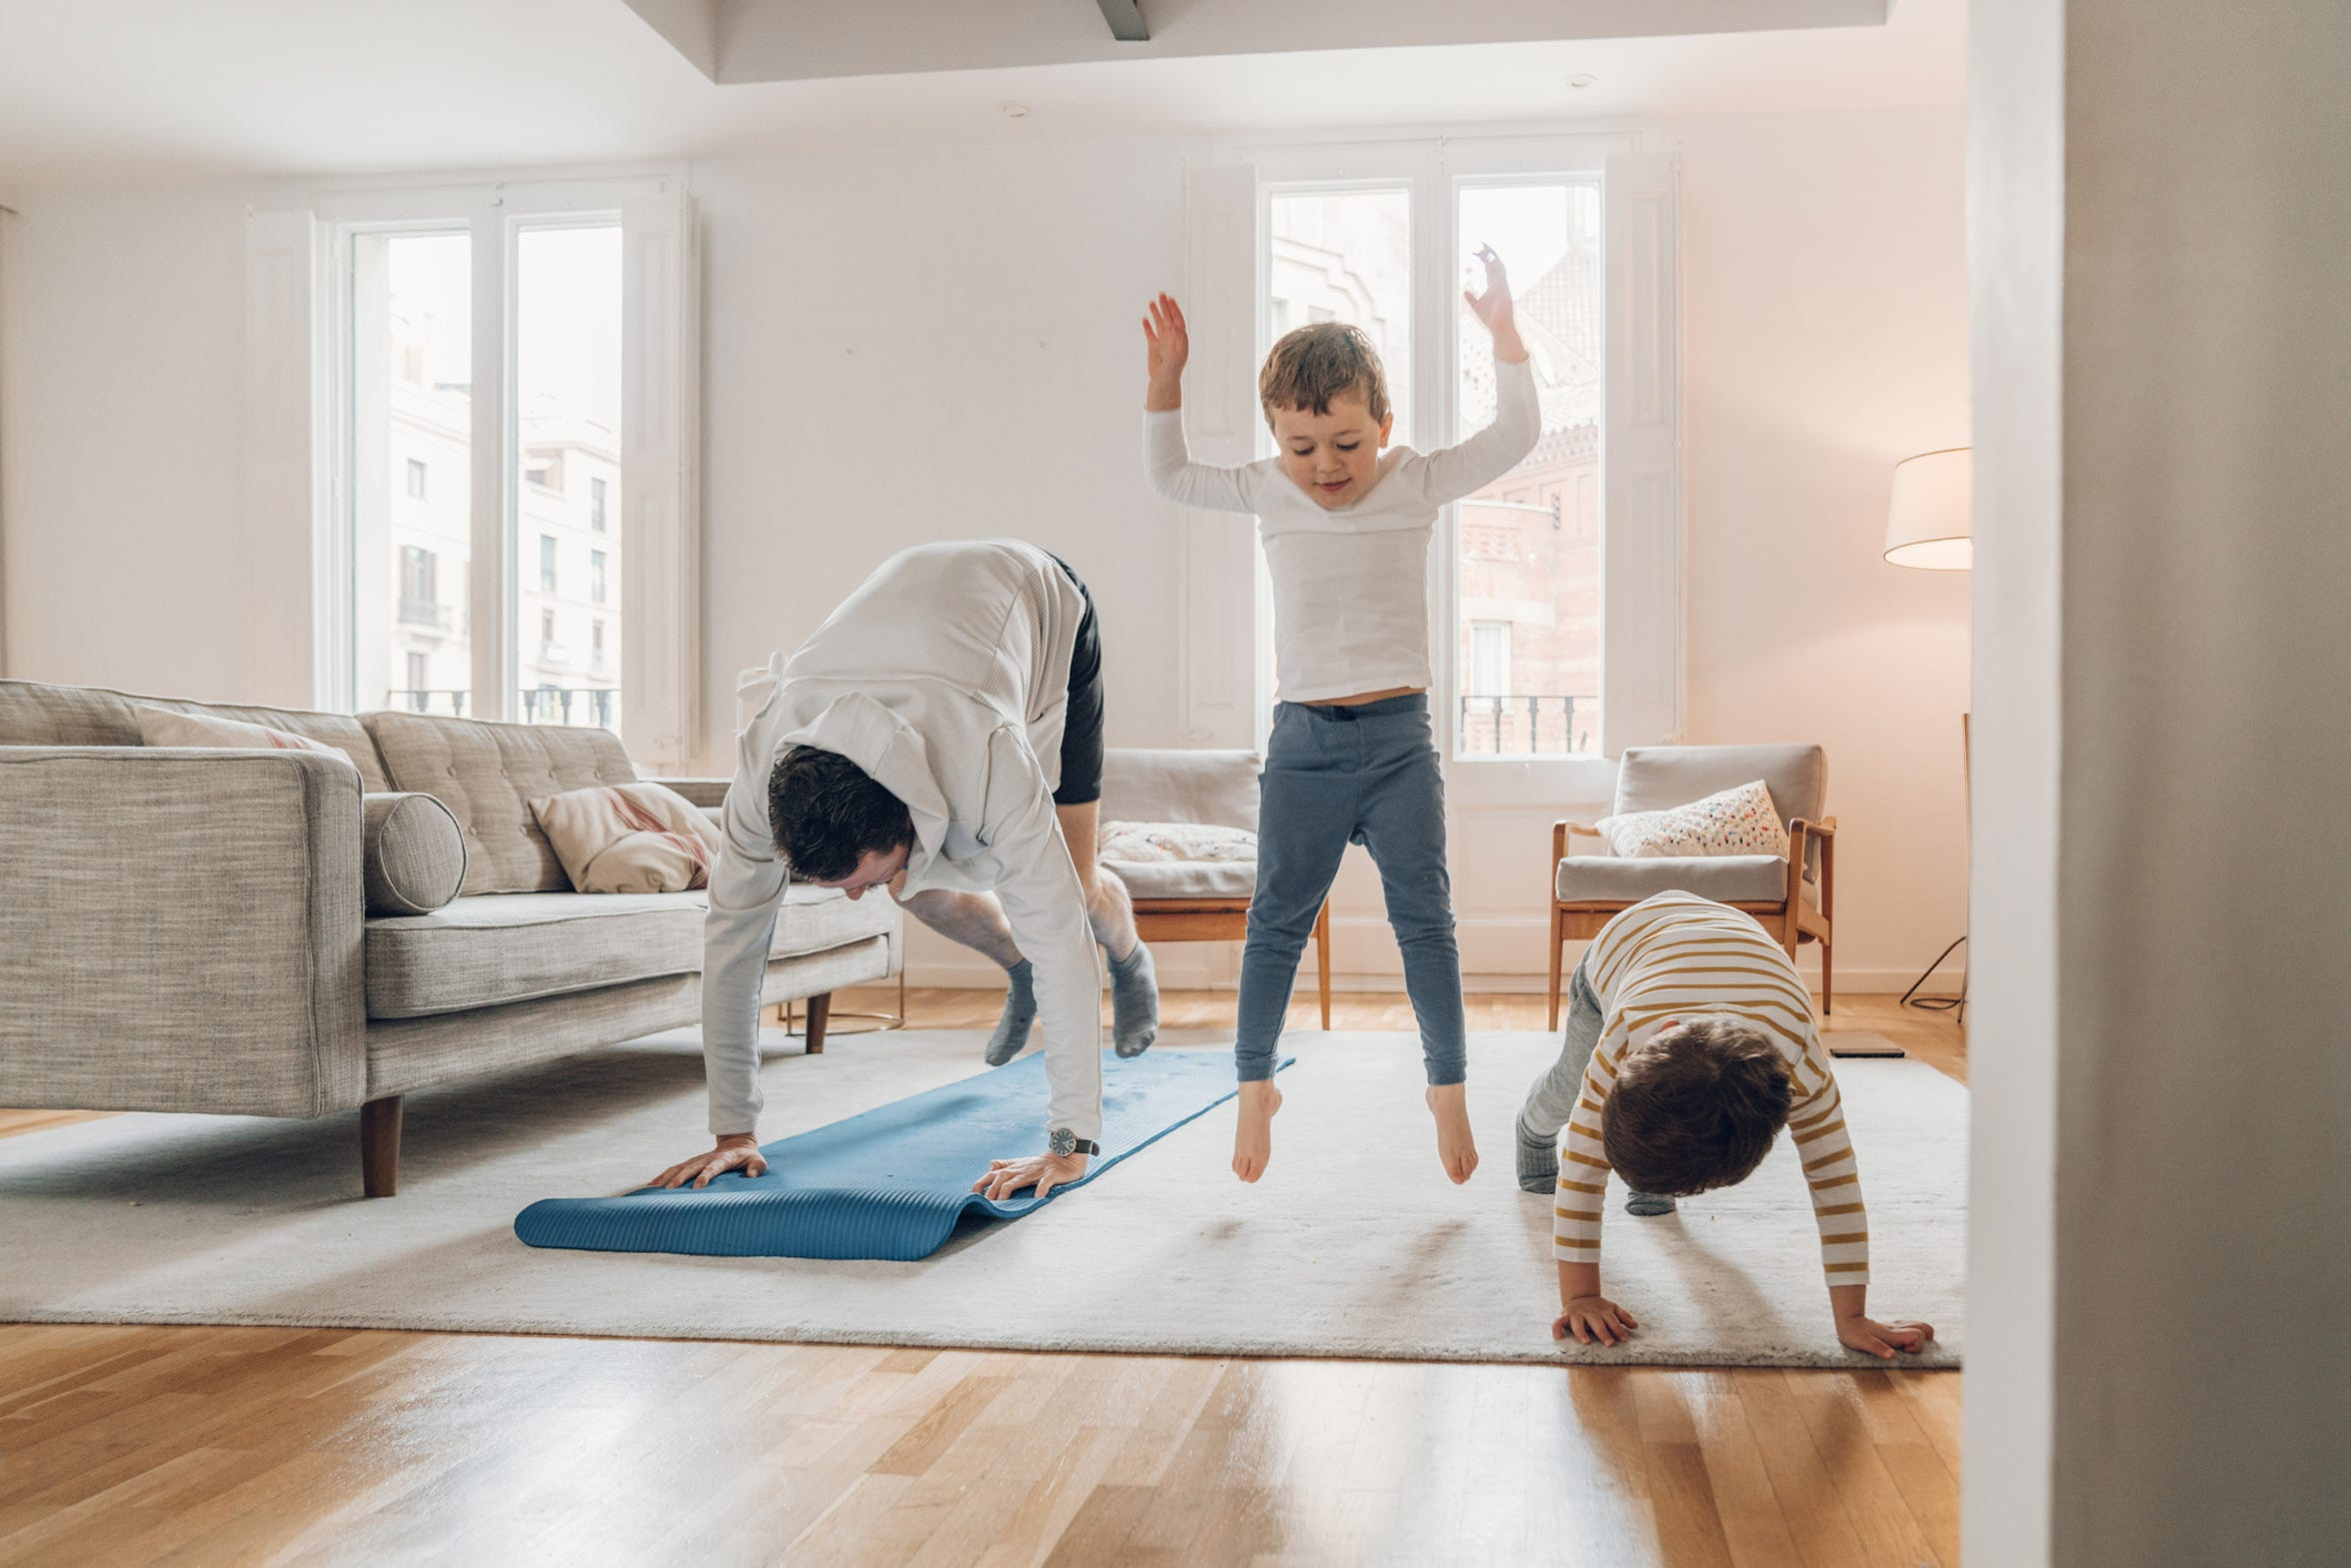 Try a simple at-home workout routine with your children — it's a win-win for everyone.